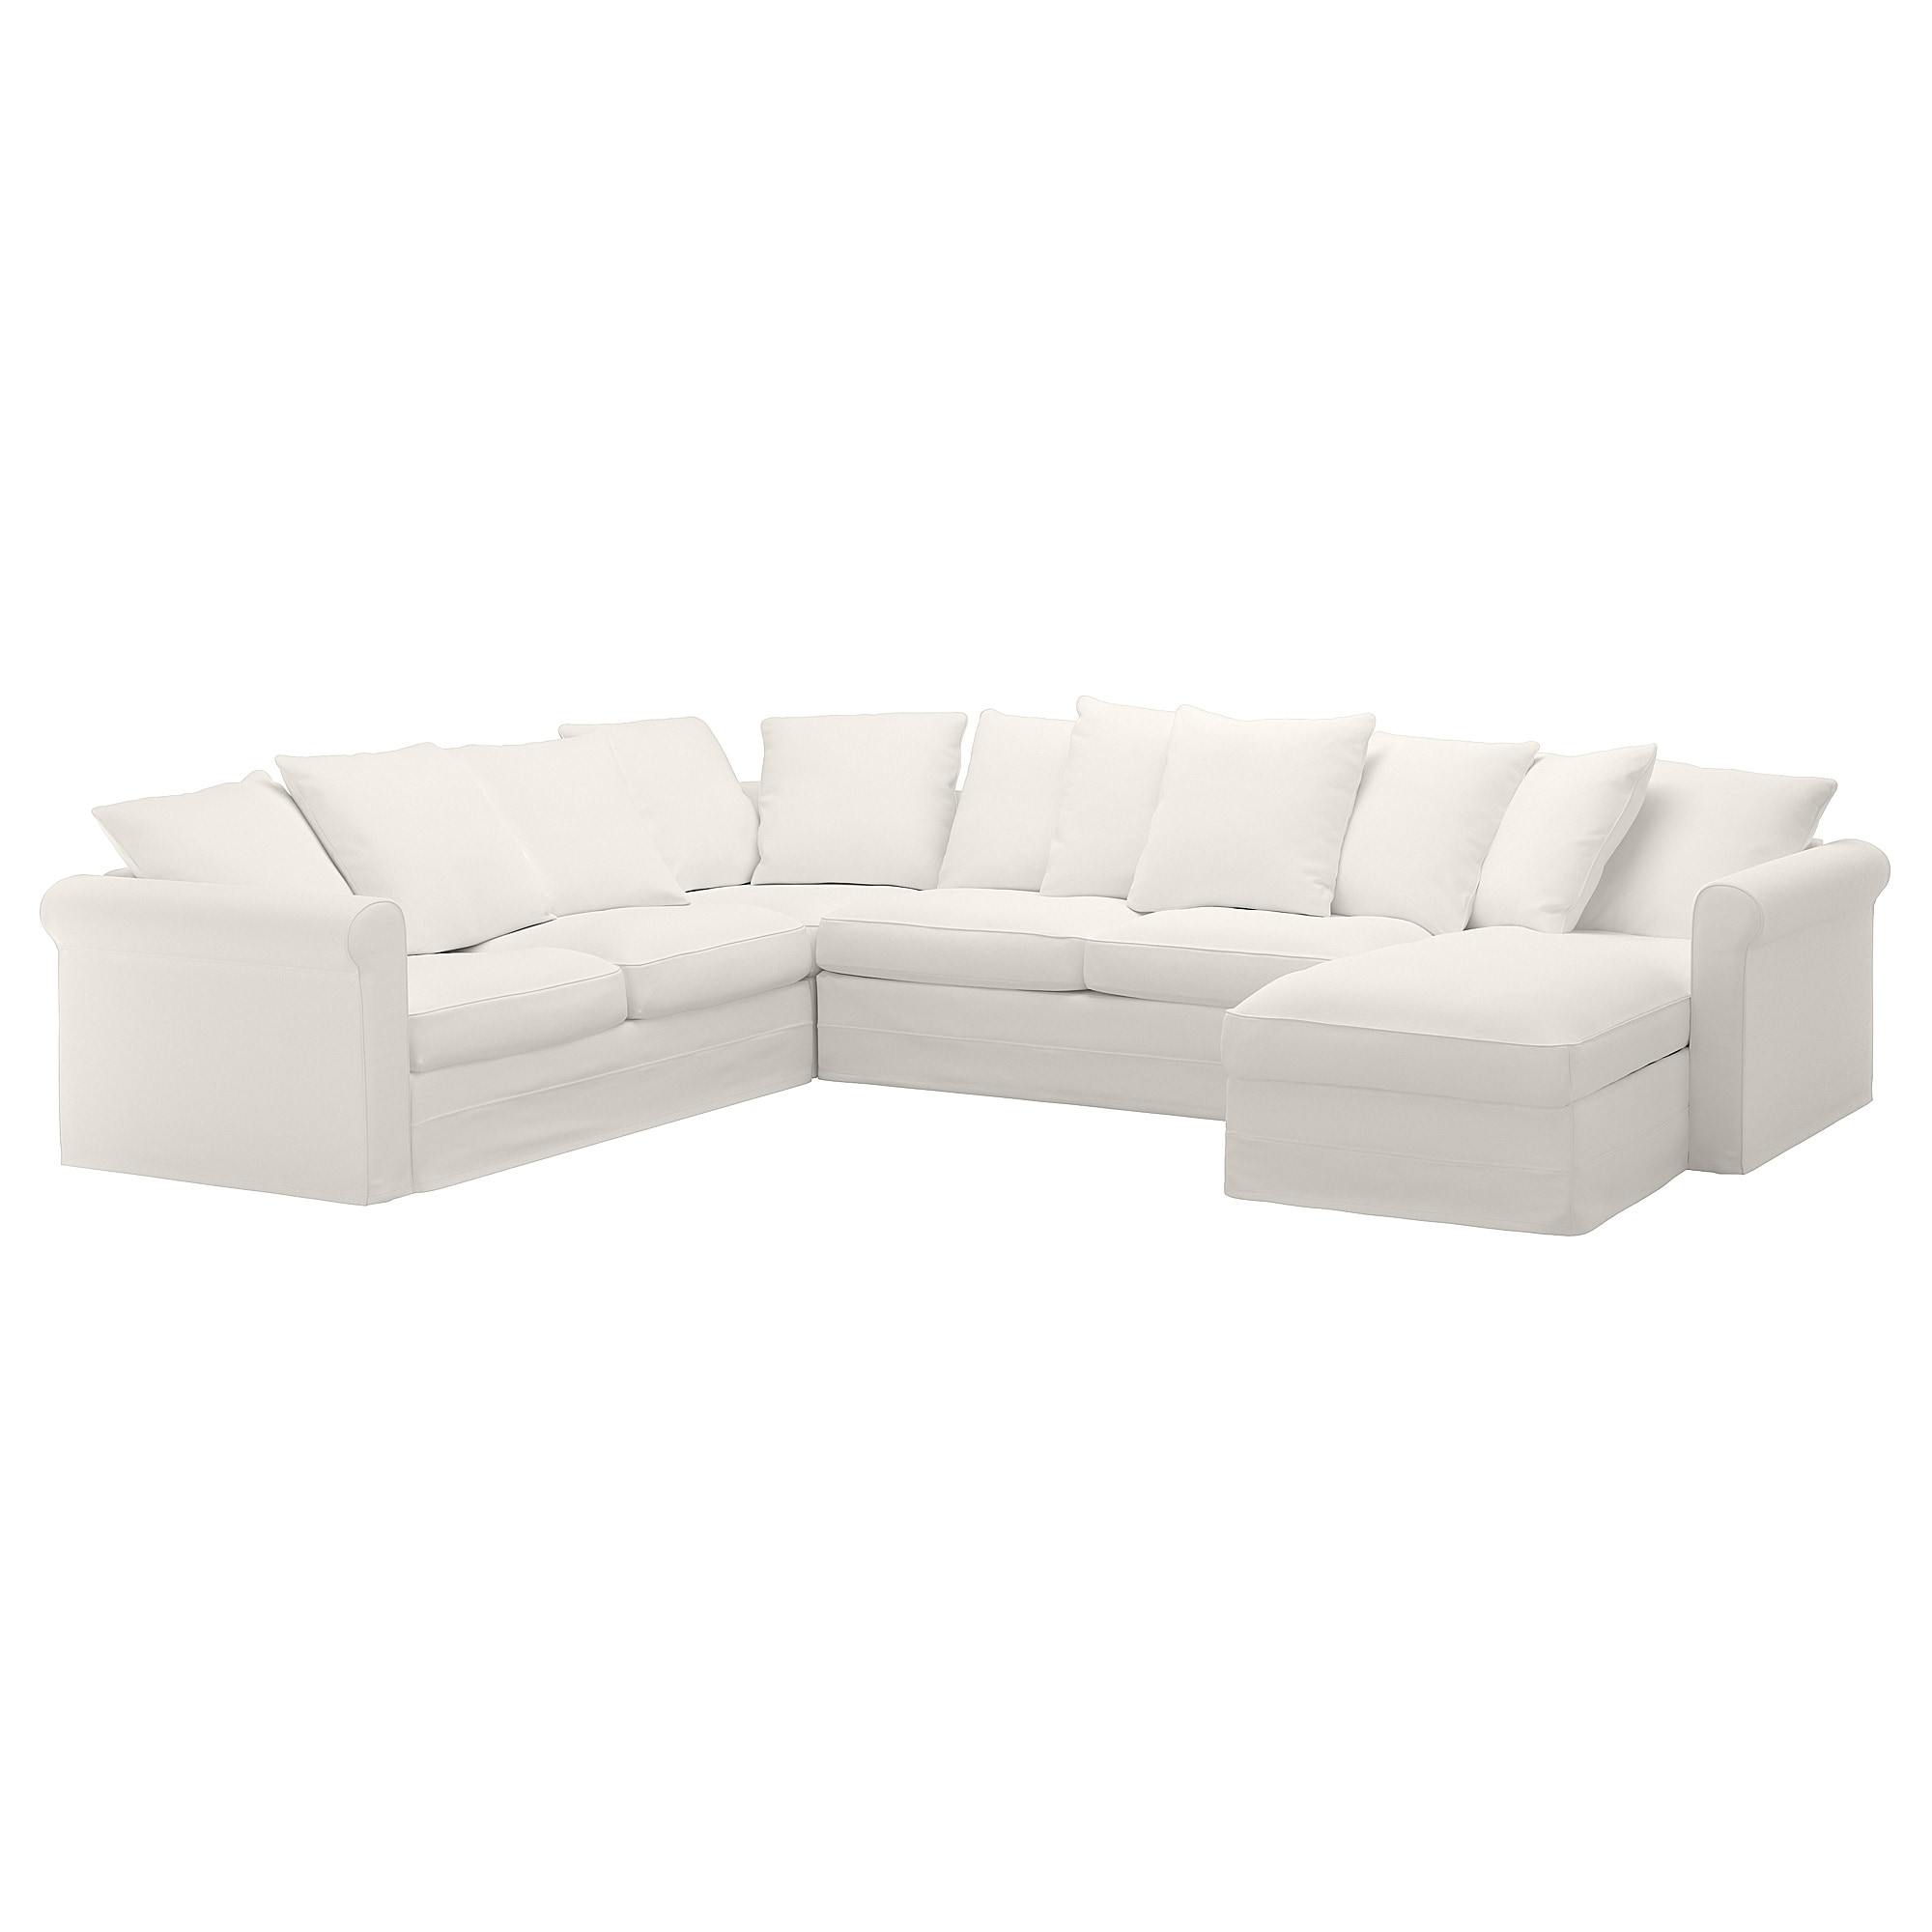 Corner sleeper sofa, 5-seat GRÖNLID with chaise, Inseros white